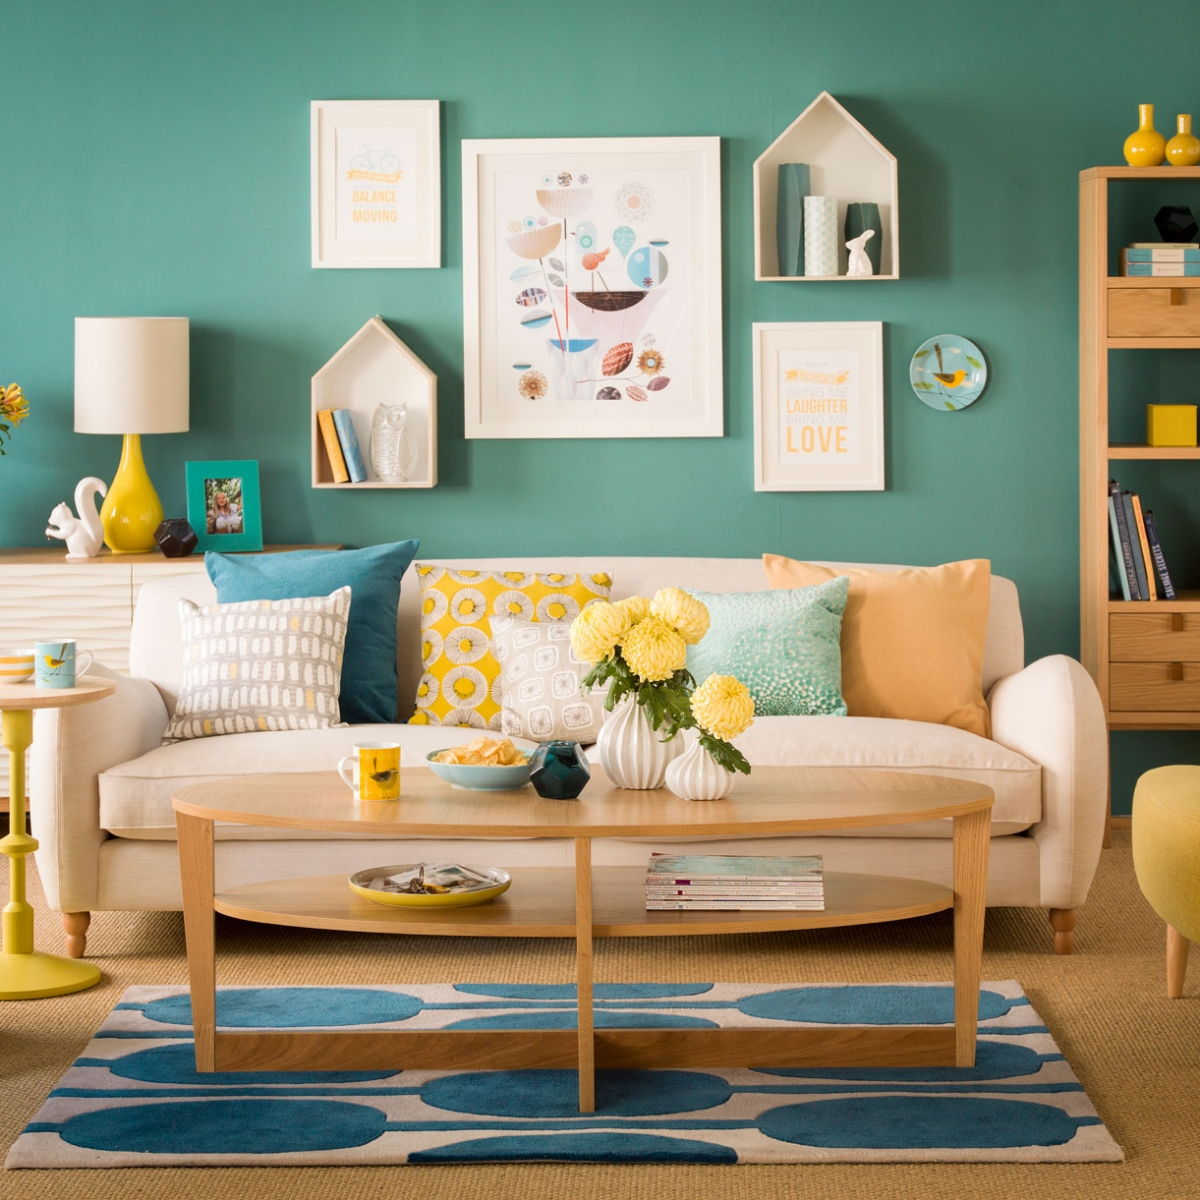 Create a mood board sophie robinson for Teal blue living room ideas